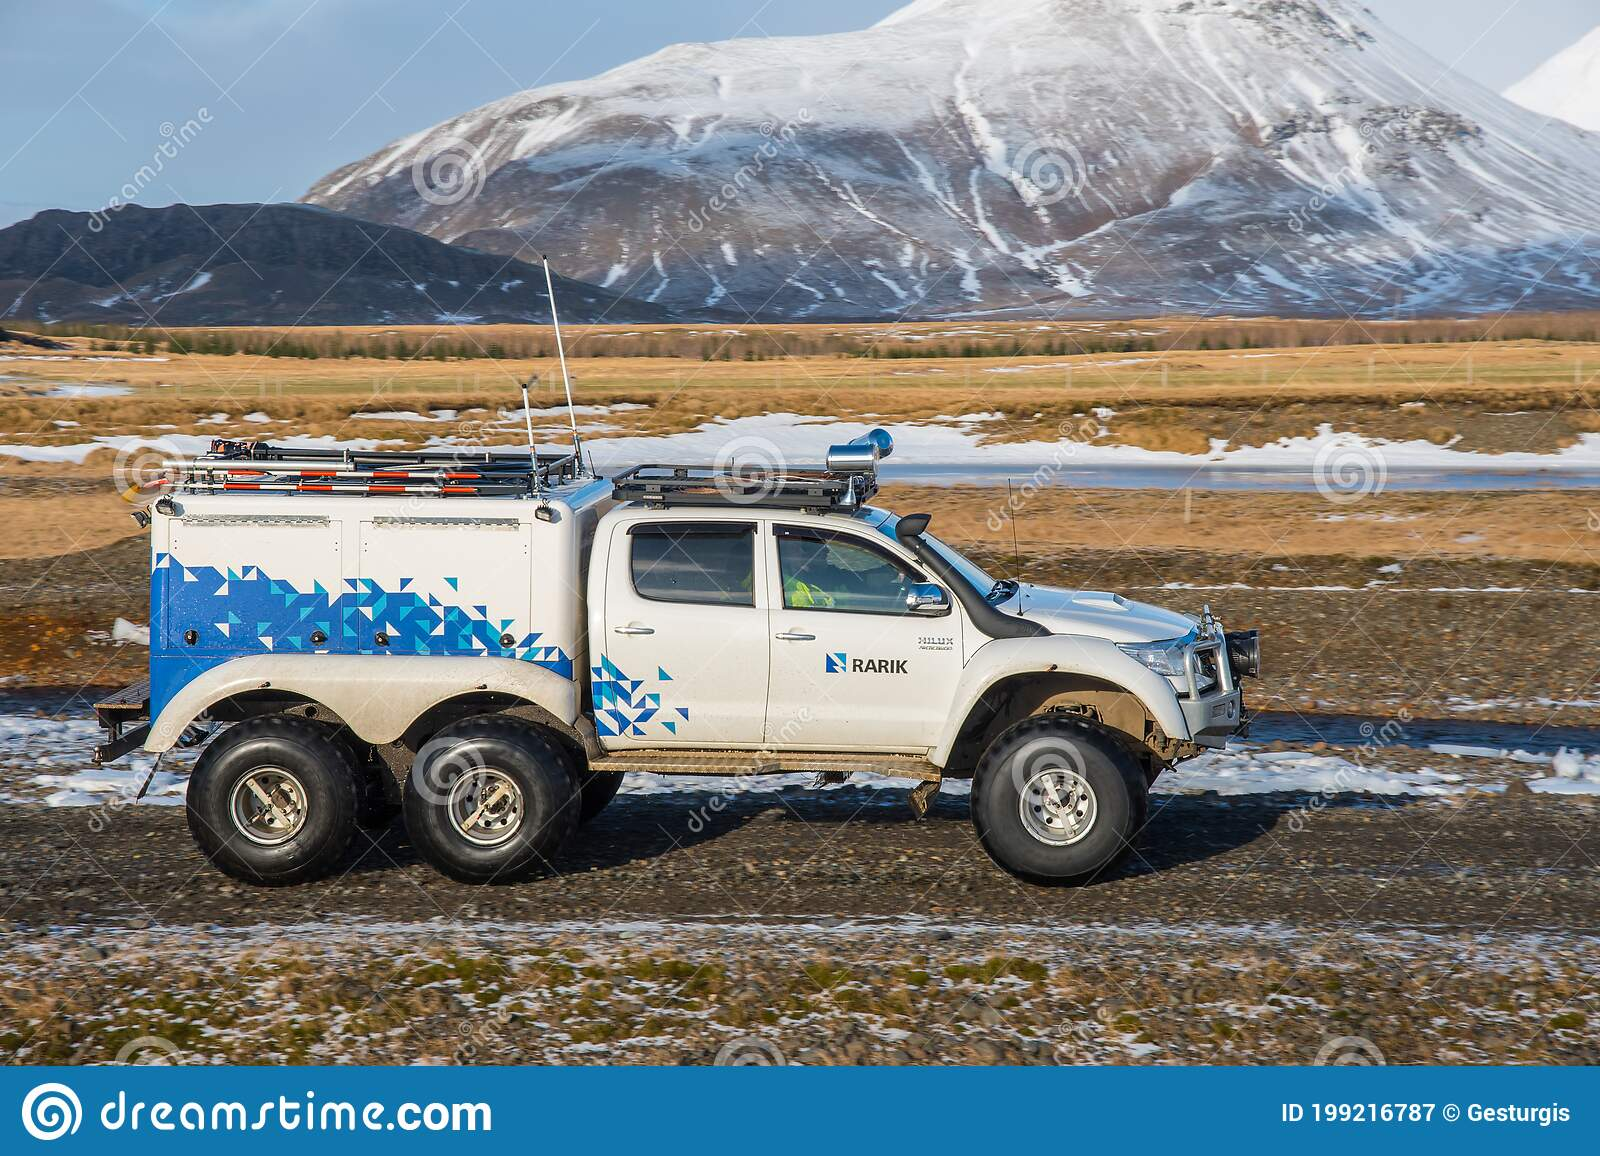 Heavily Modified 6x6 Toyota Hilux Pickup Truck From Icelandic Electricity Distrubutor Company Rarik Editorial Photography Image Of Toyota Tire 199216787